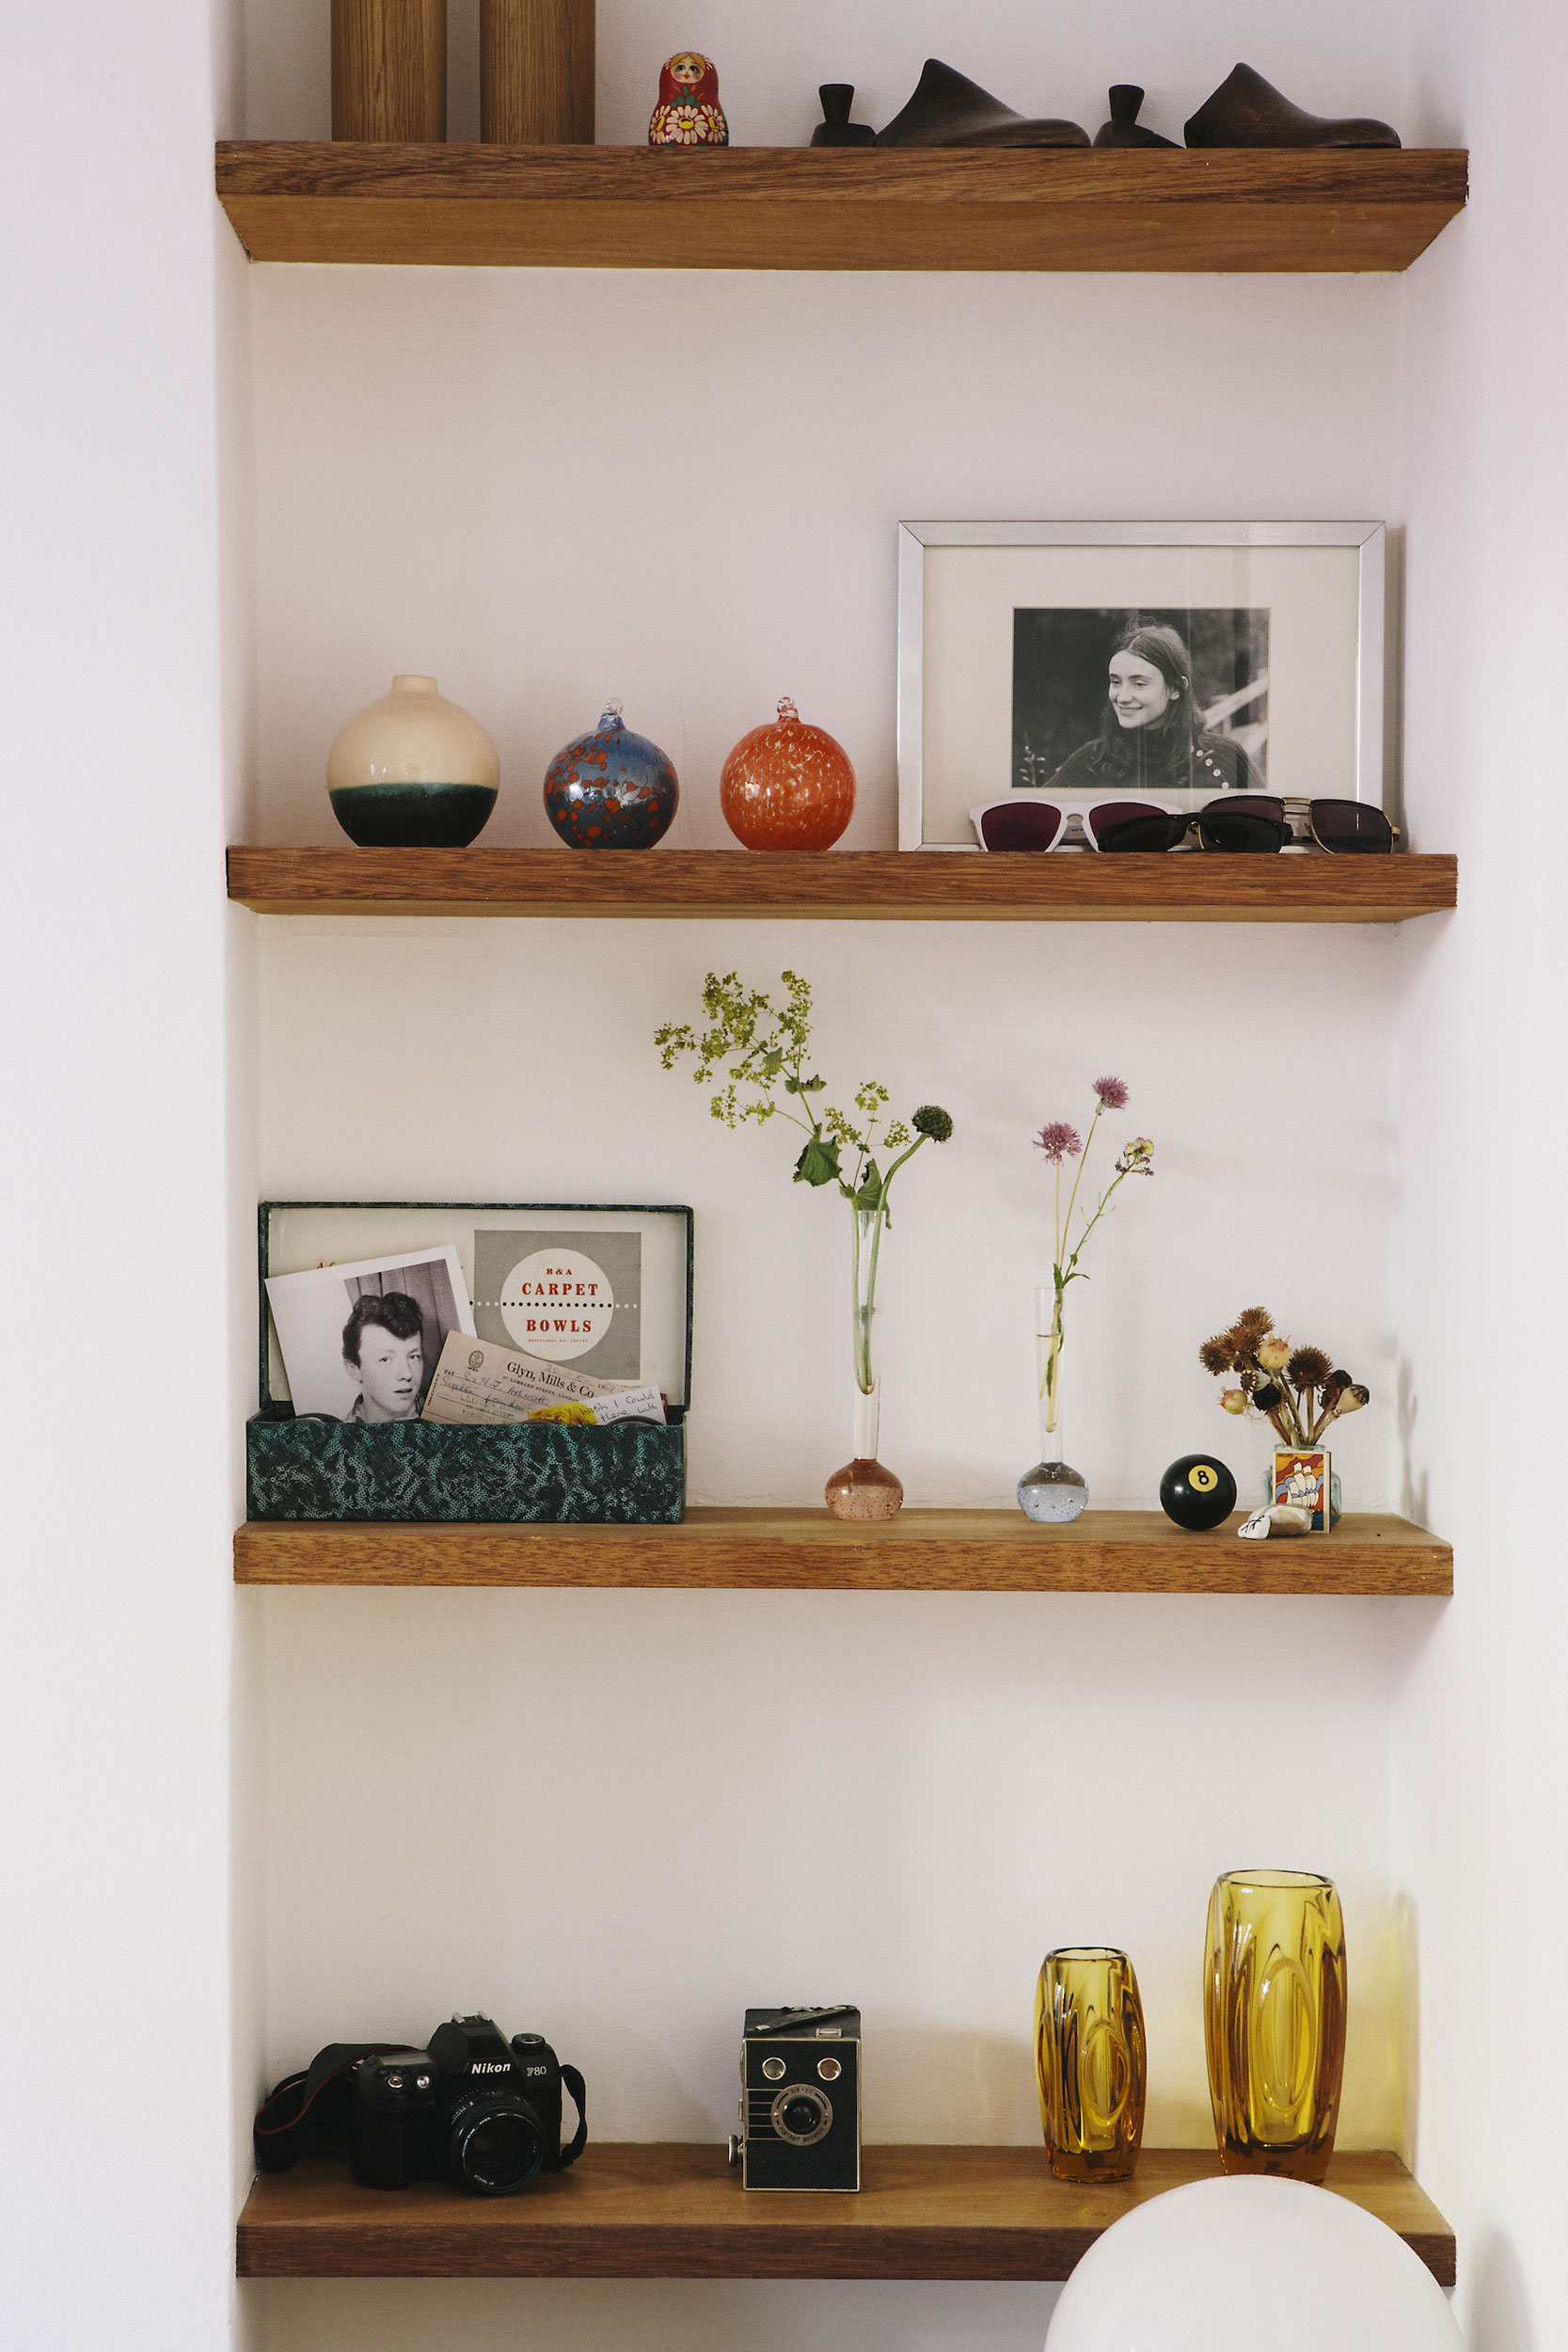 alcove shelves carpenter gypsy hill cherry ply